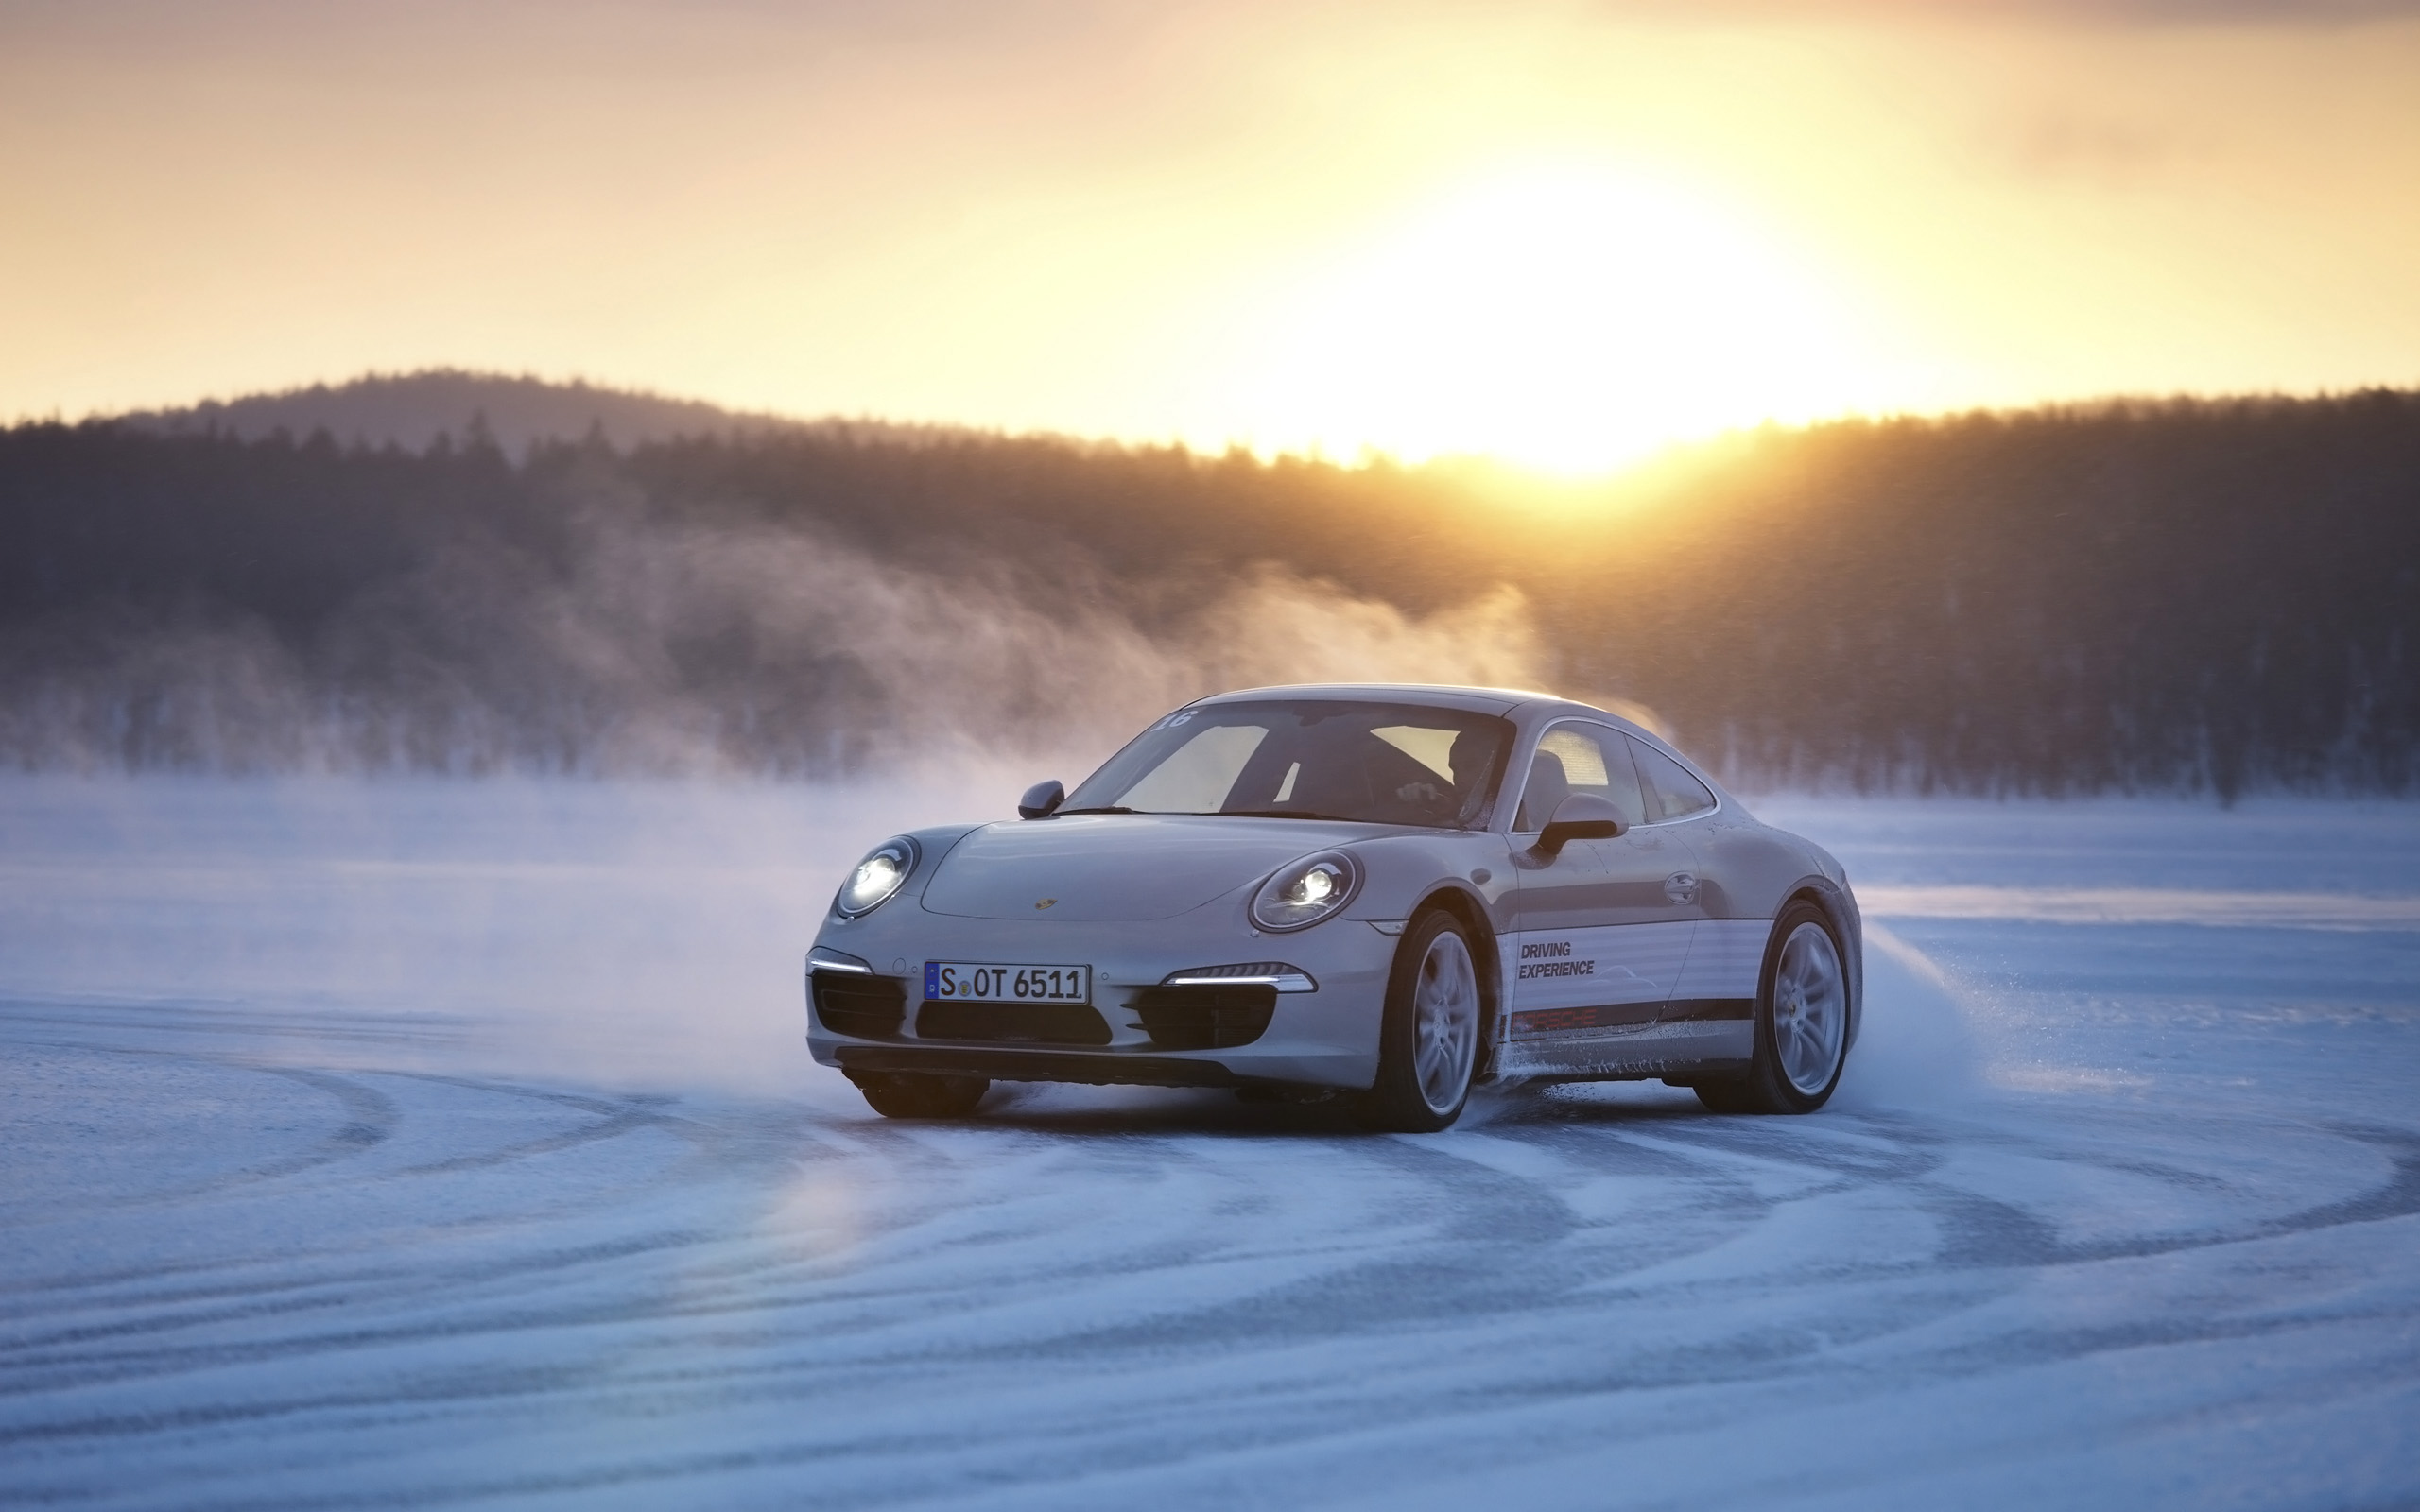 2013 porsche 911 in snow wallpaper | hd car wallpapers | id #3409